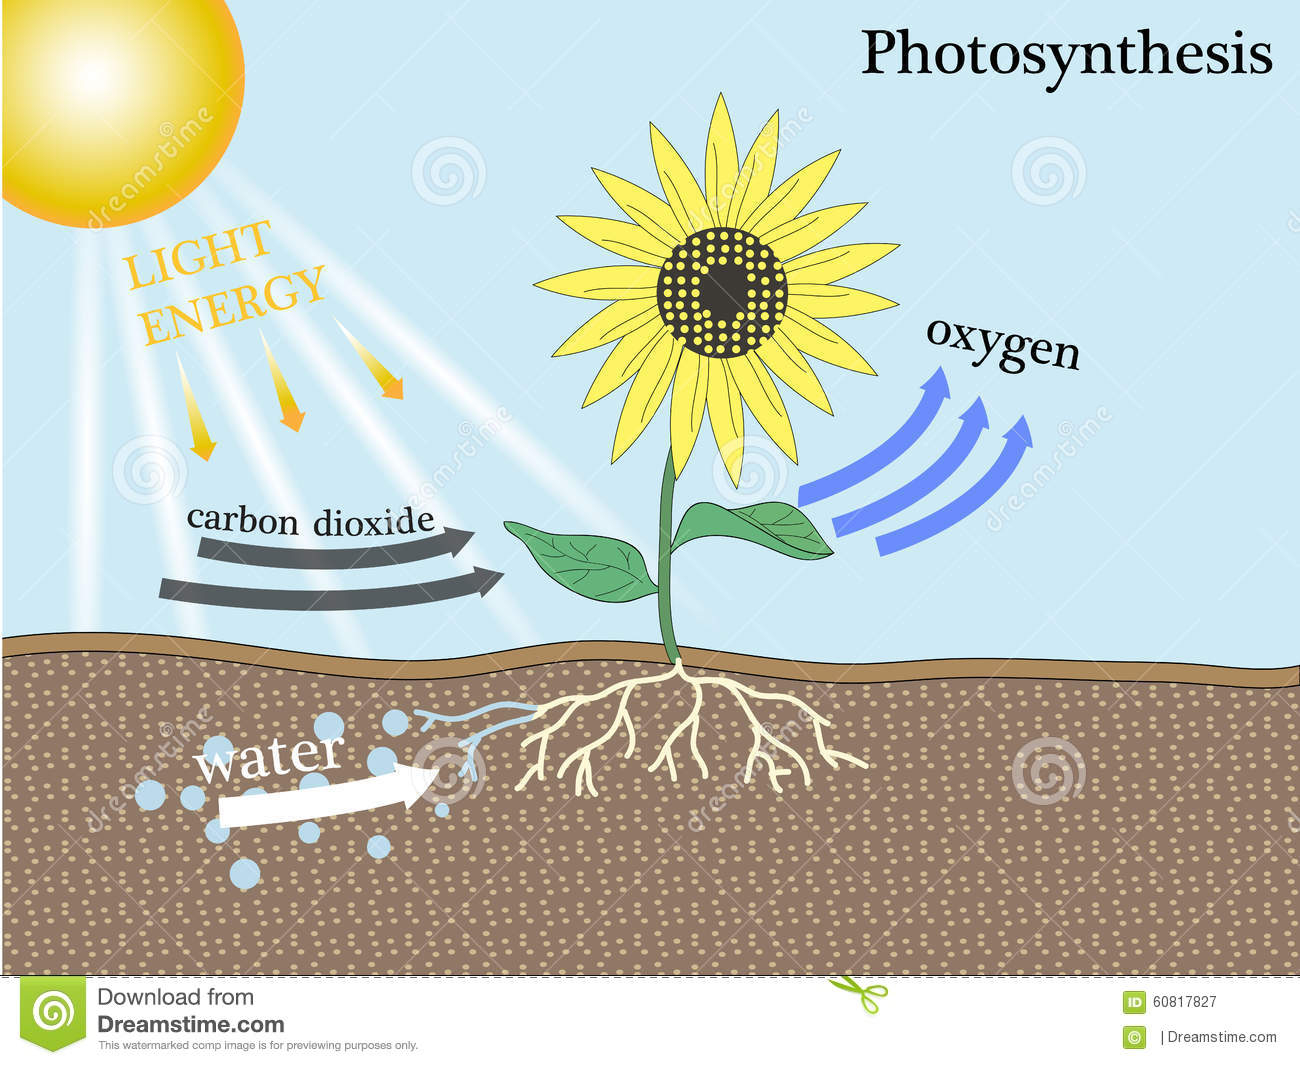 photosynthesis process diagram for 5th grade timer wiring stock vector illustration of research